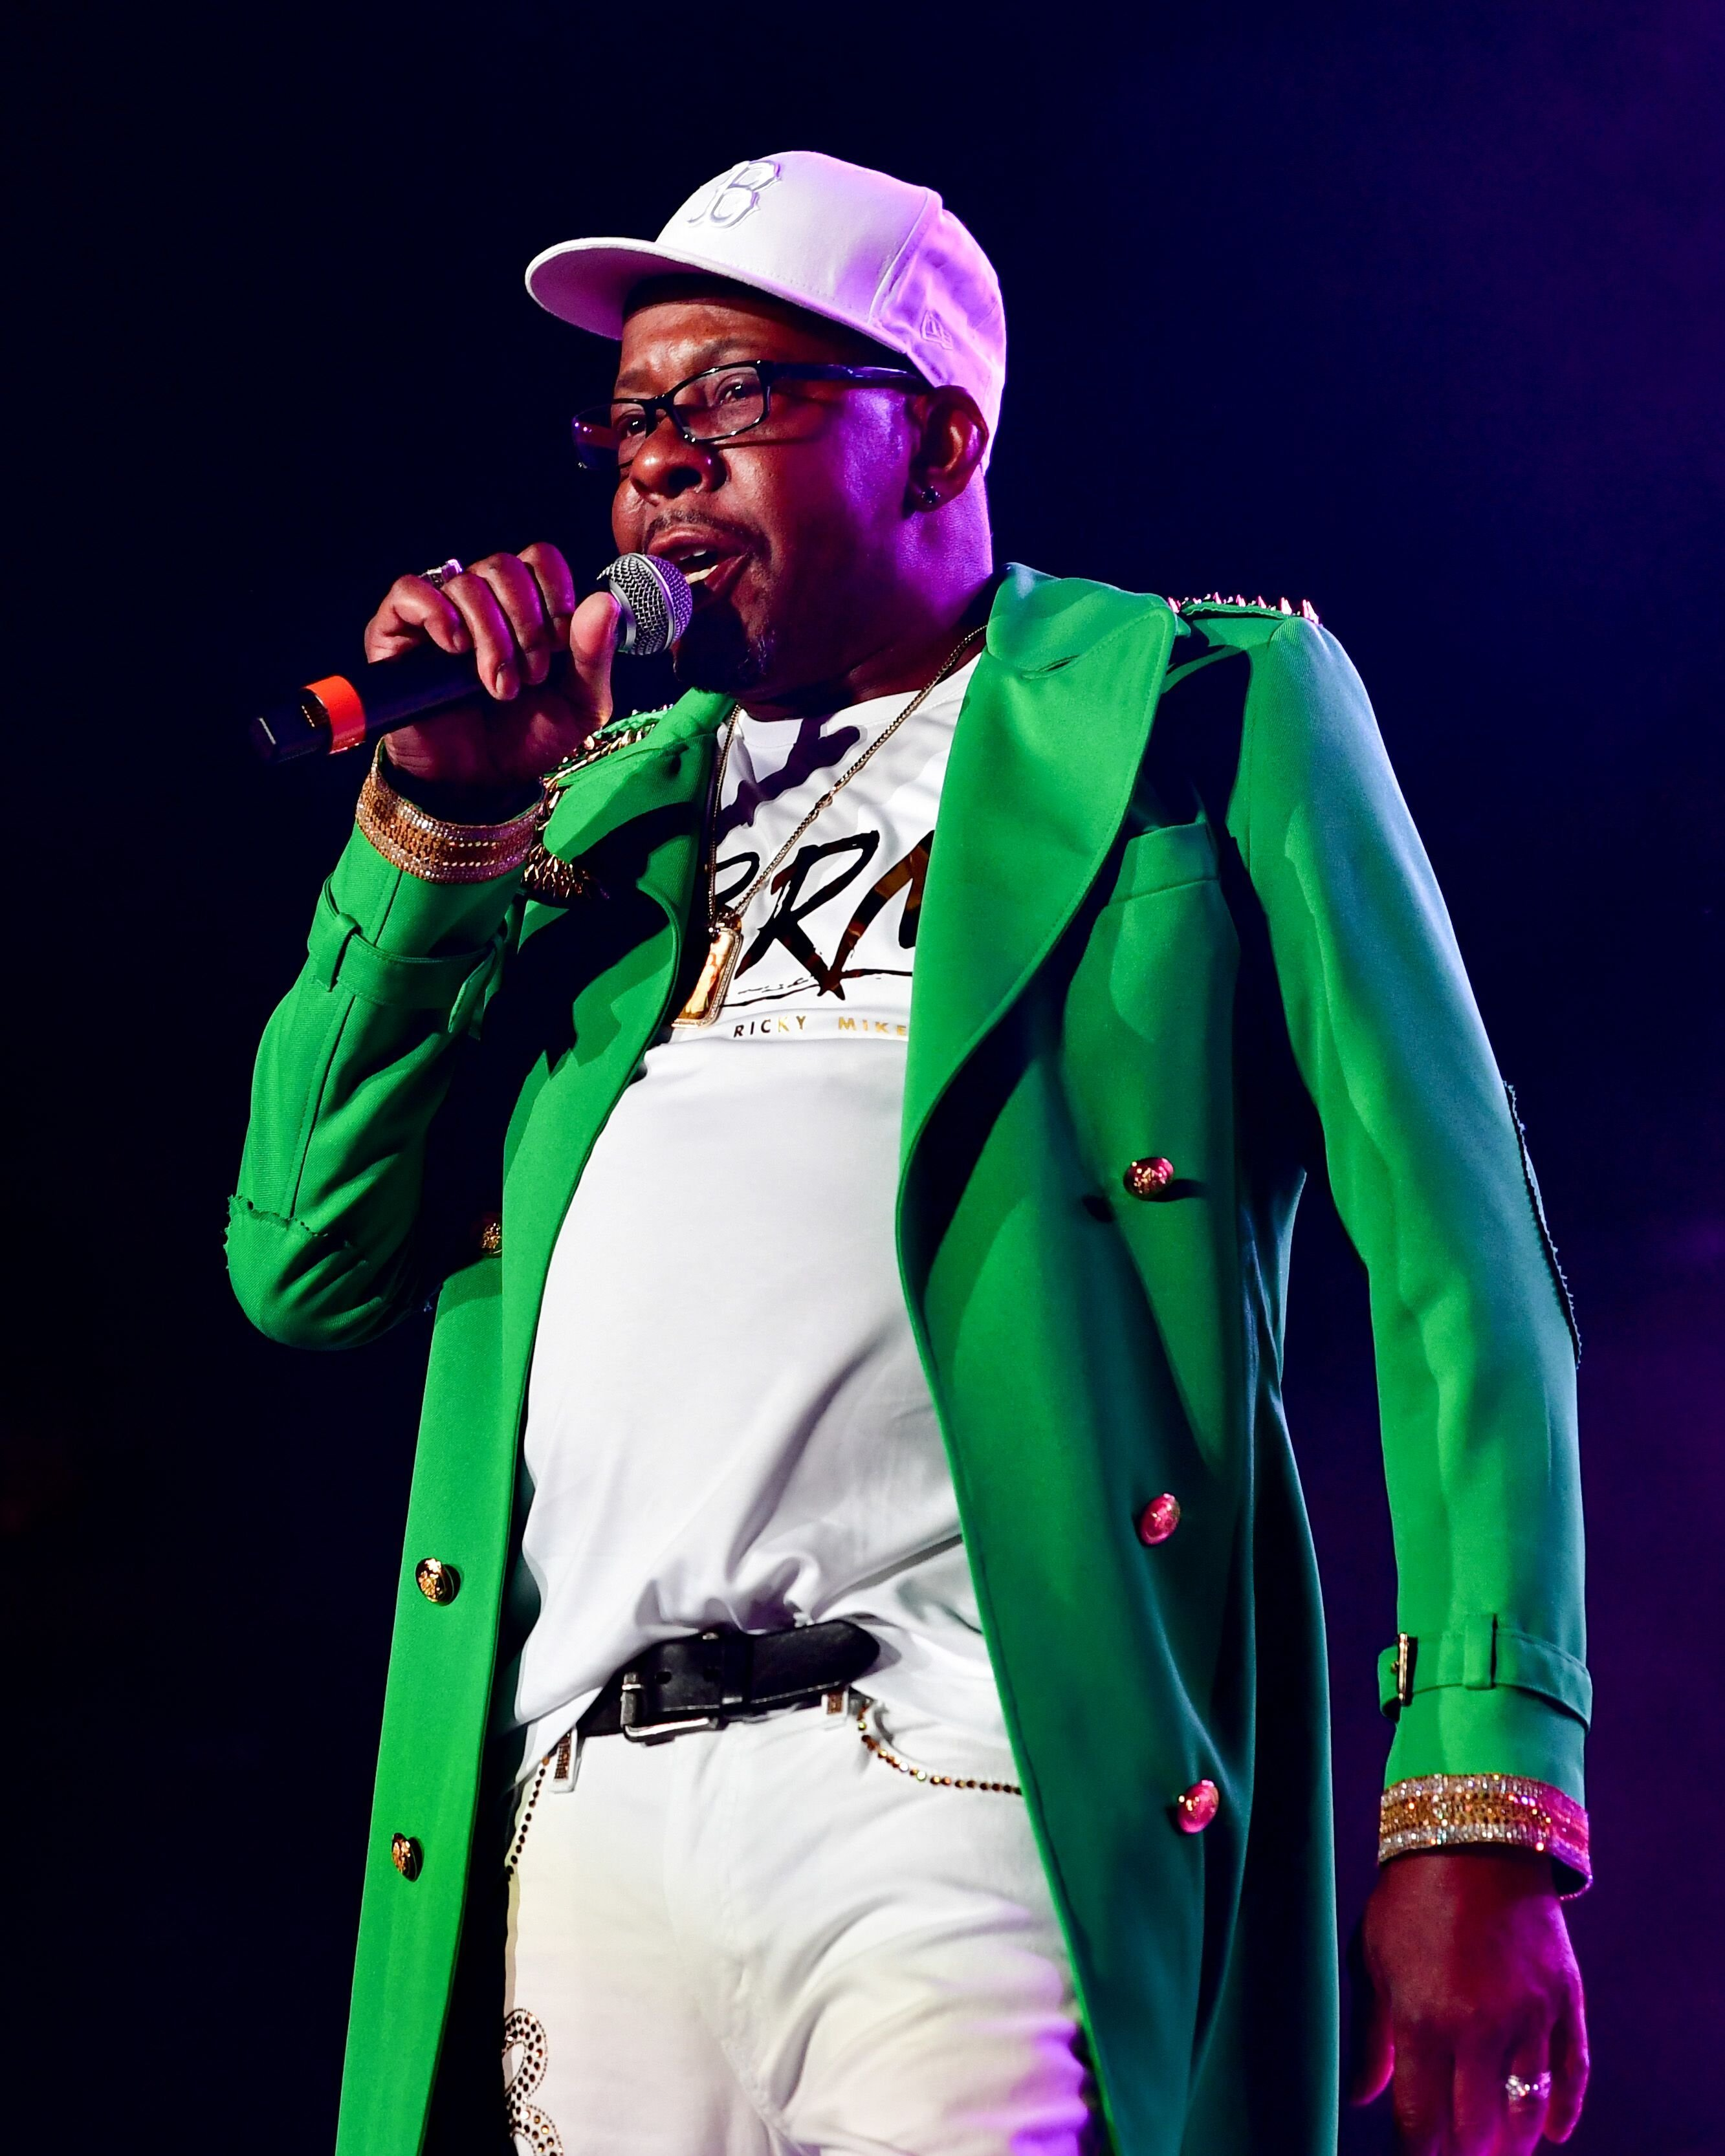 Bobby Brown of RMBM performs during the 2019 ESSENCE Festival at the Mercedes-Benz Superdome | Photo: Getty Images